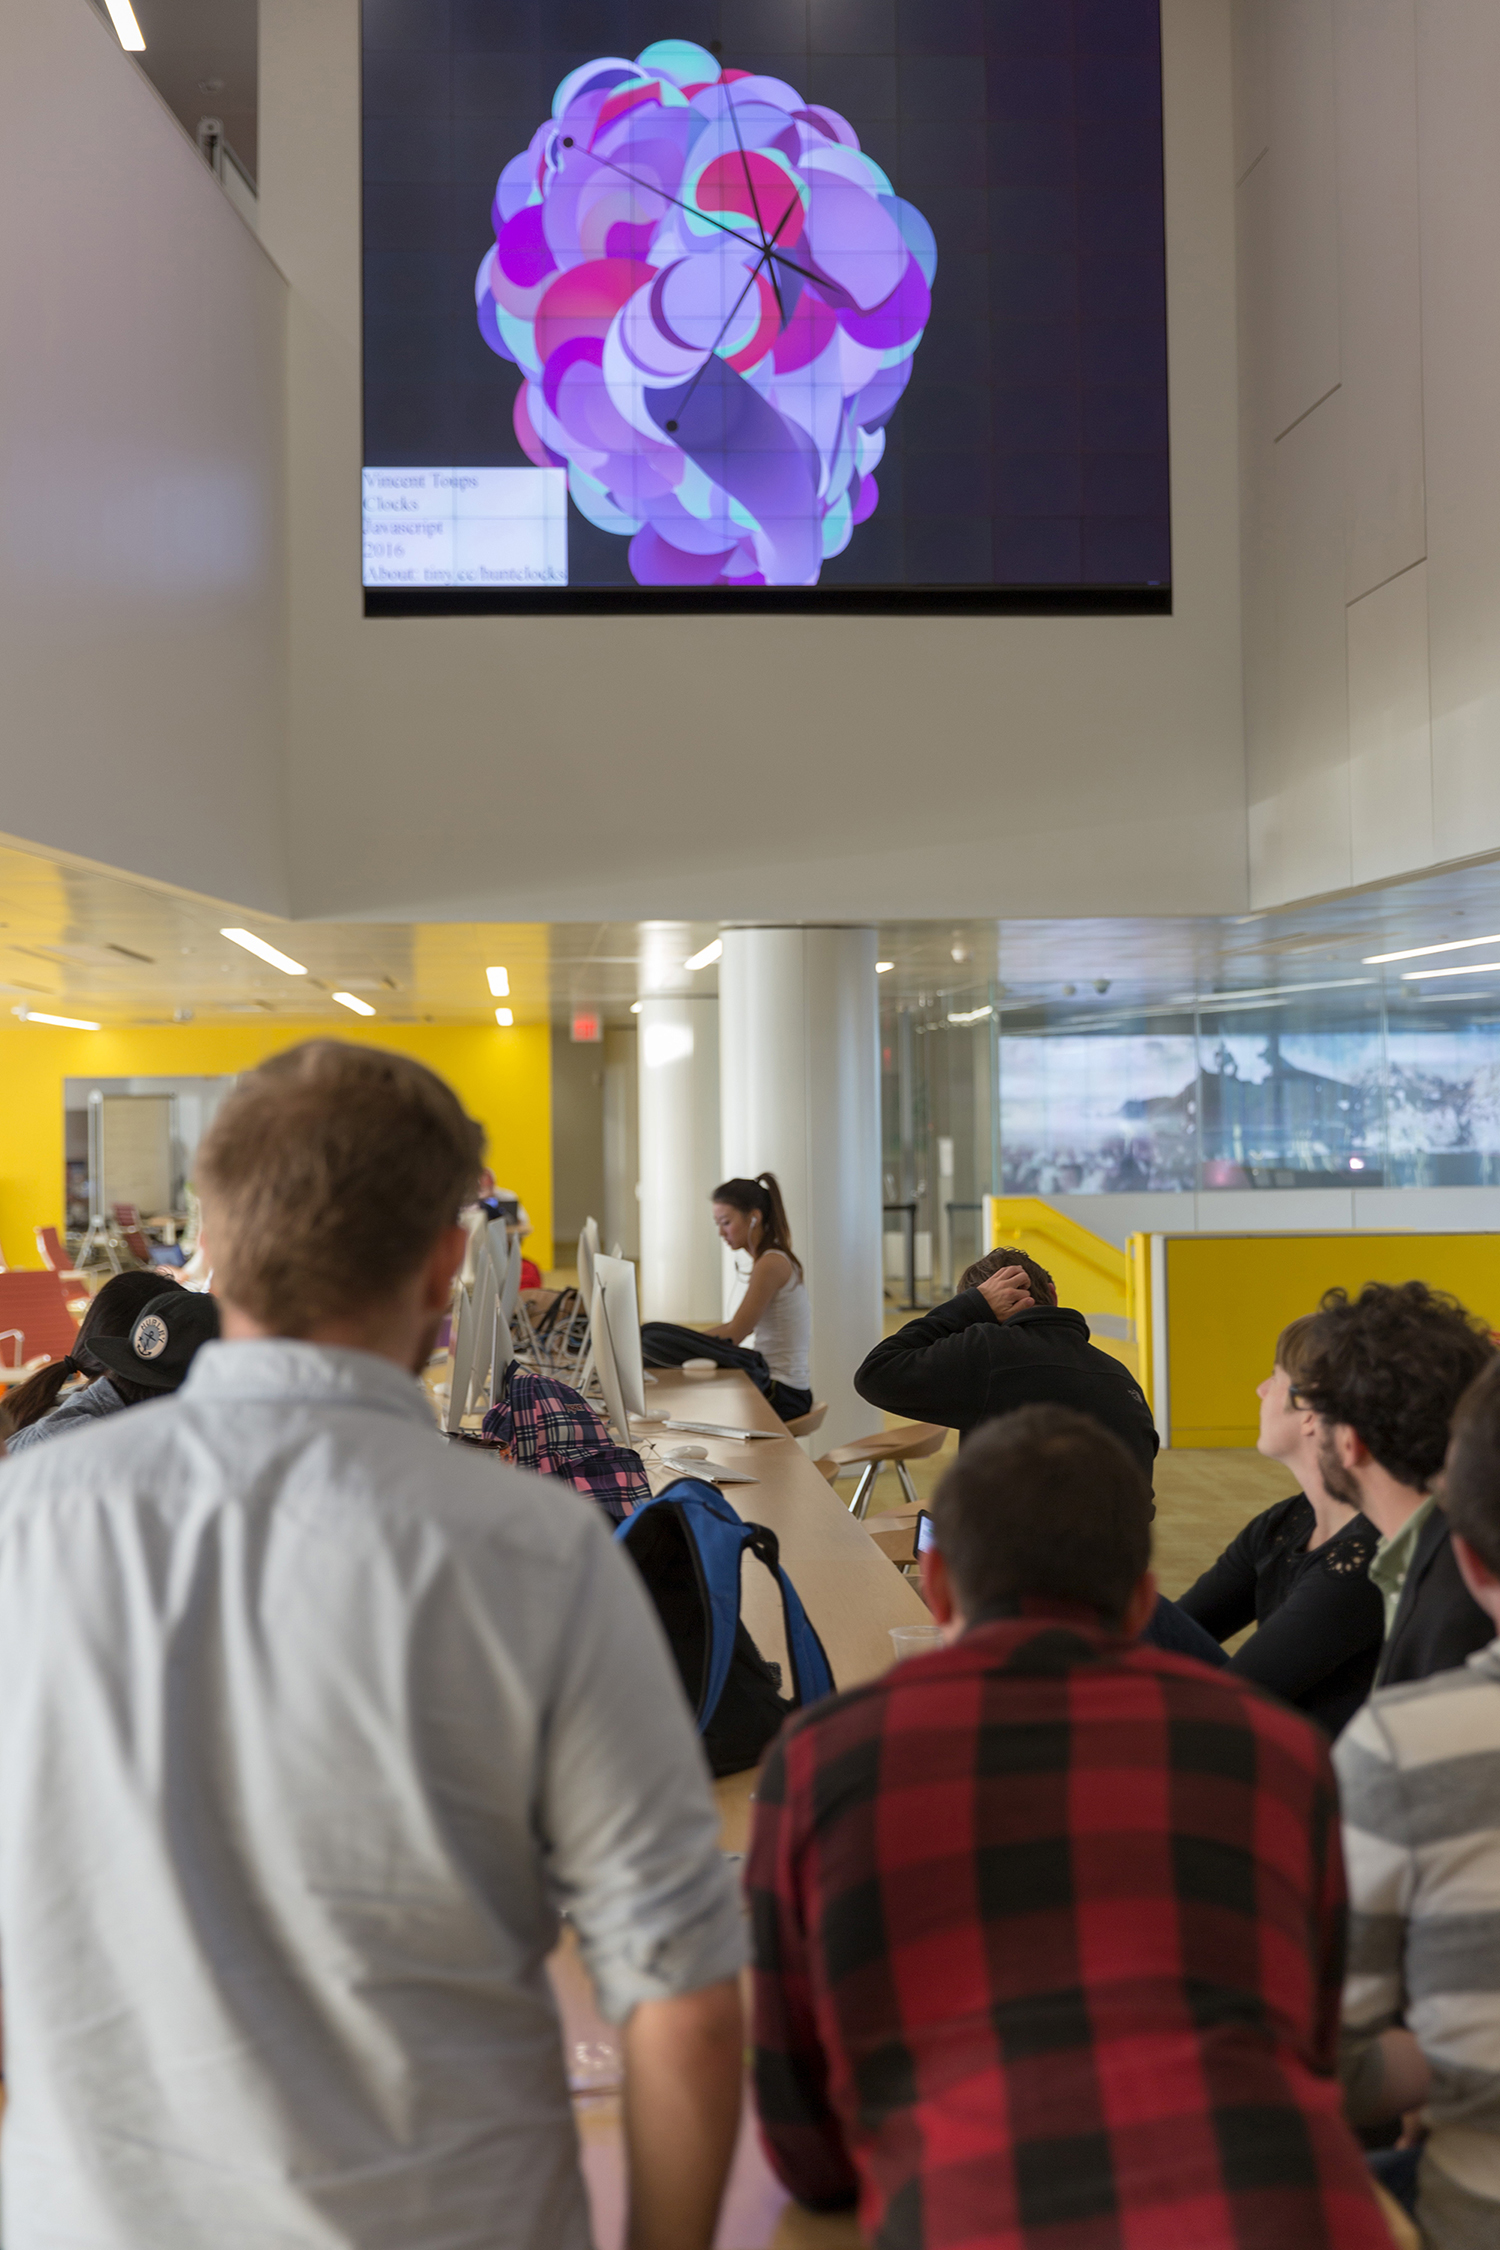 Students look at an image projected onto the wall of the commons at Hunt Library